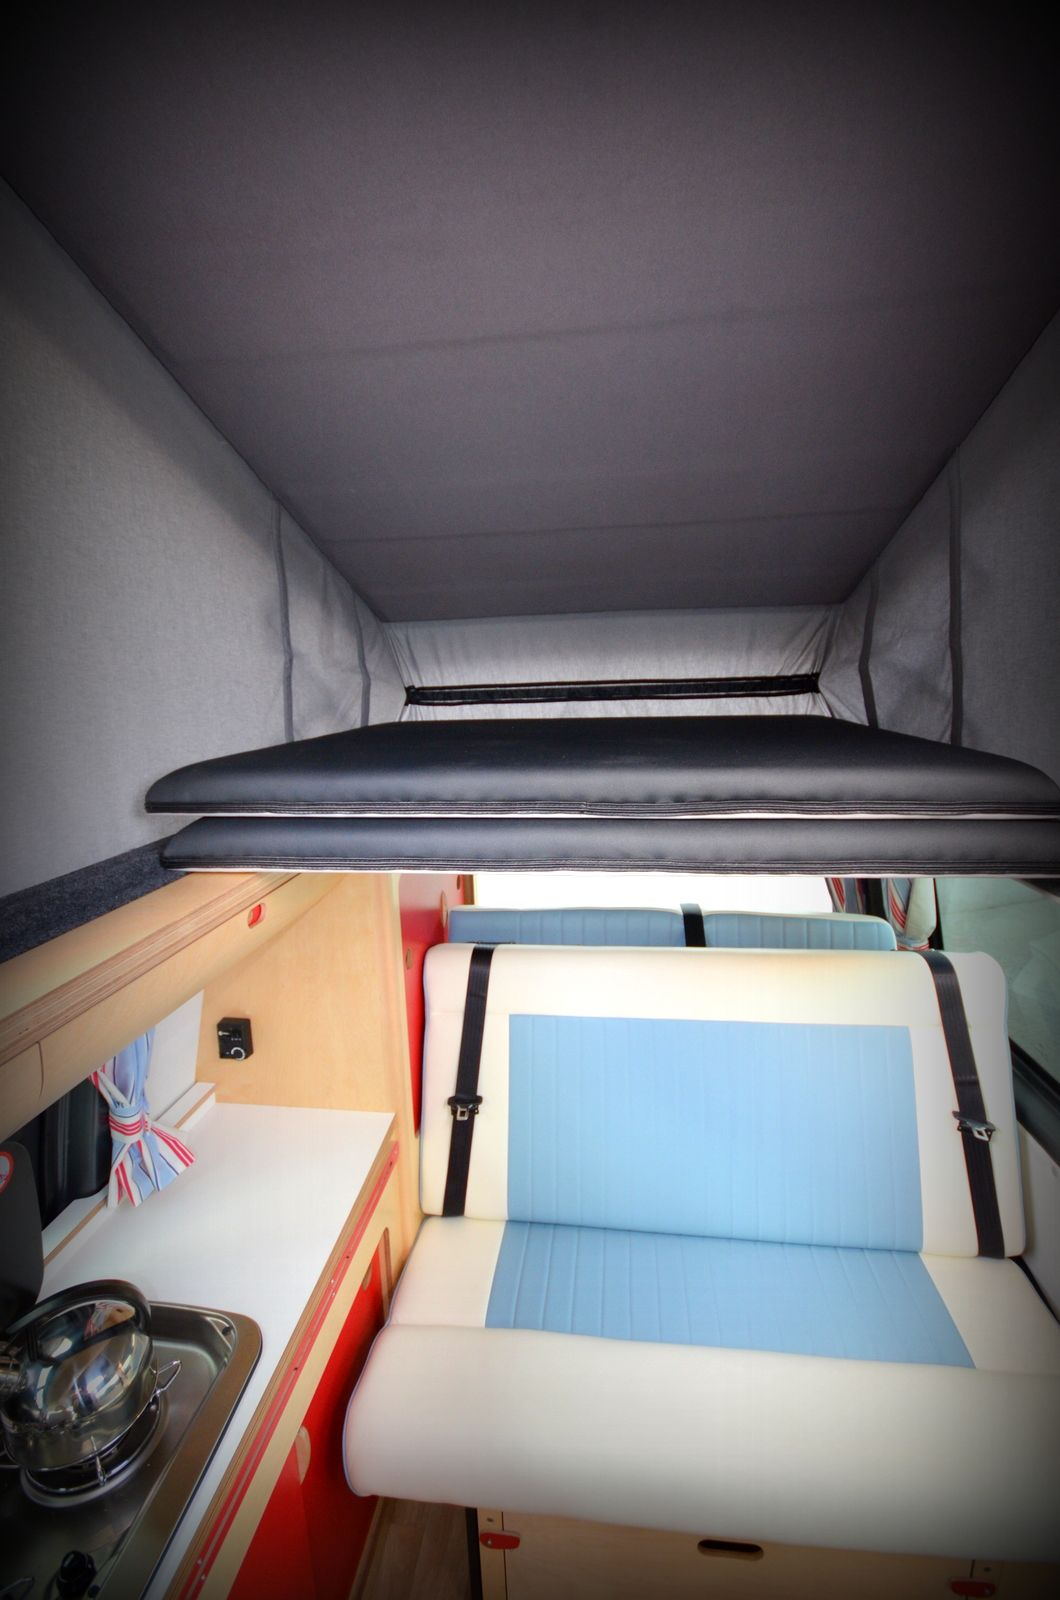 T5 front elevating roof 2 panel bed Classic campers, Rv